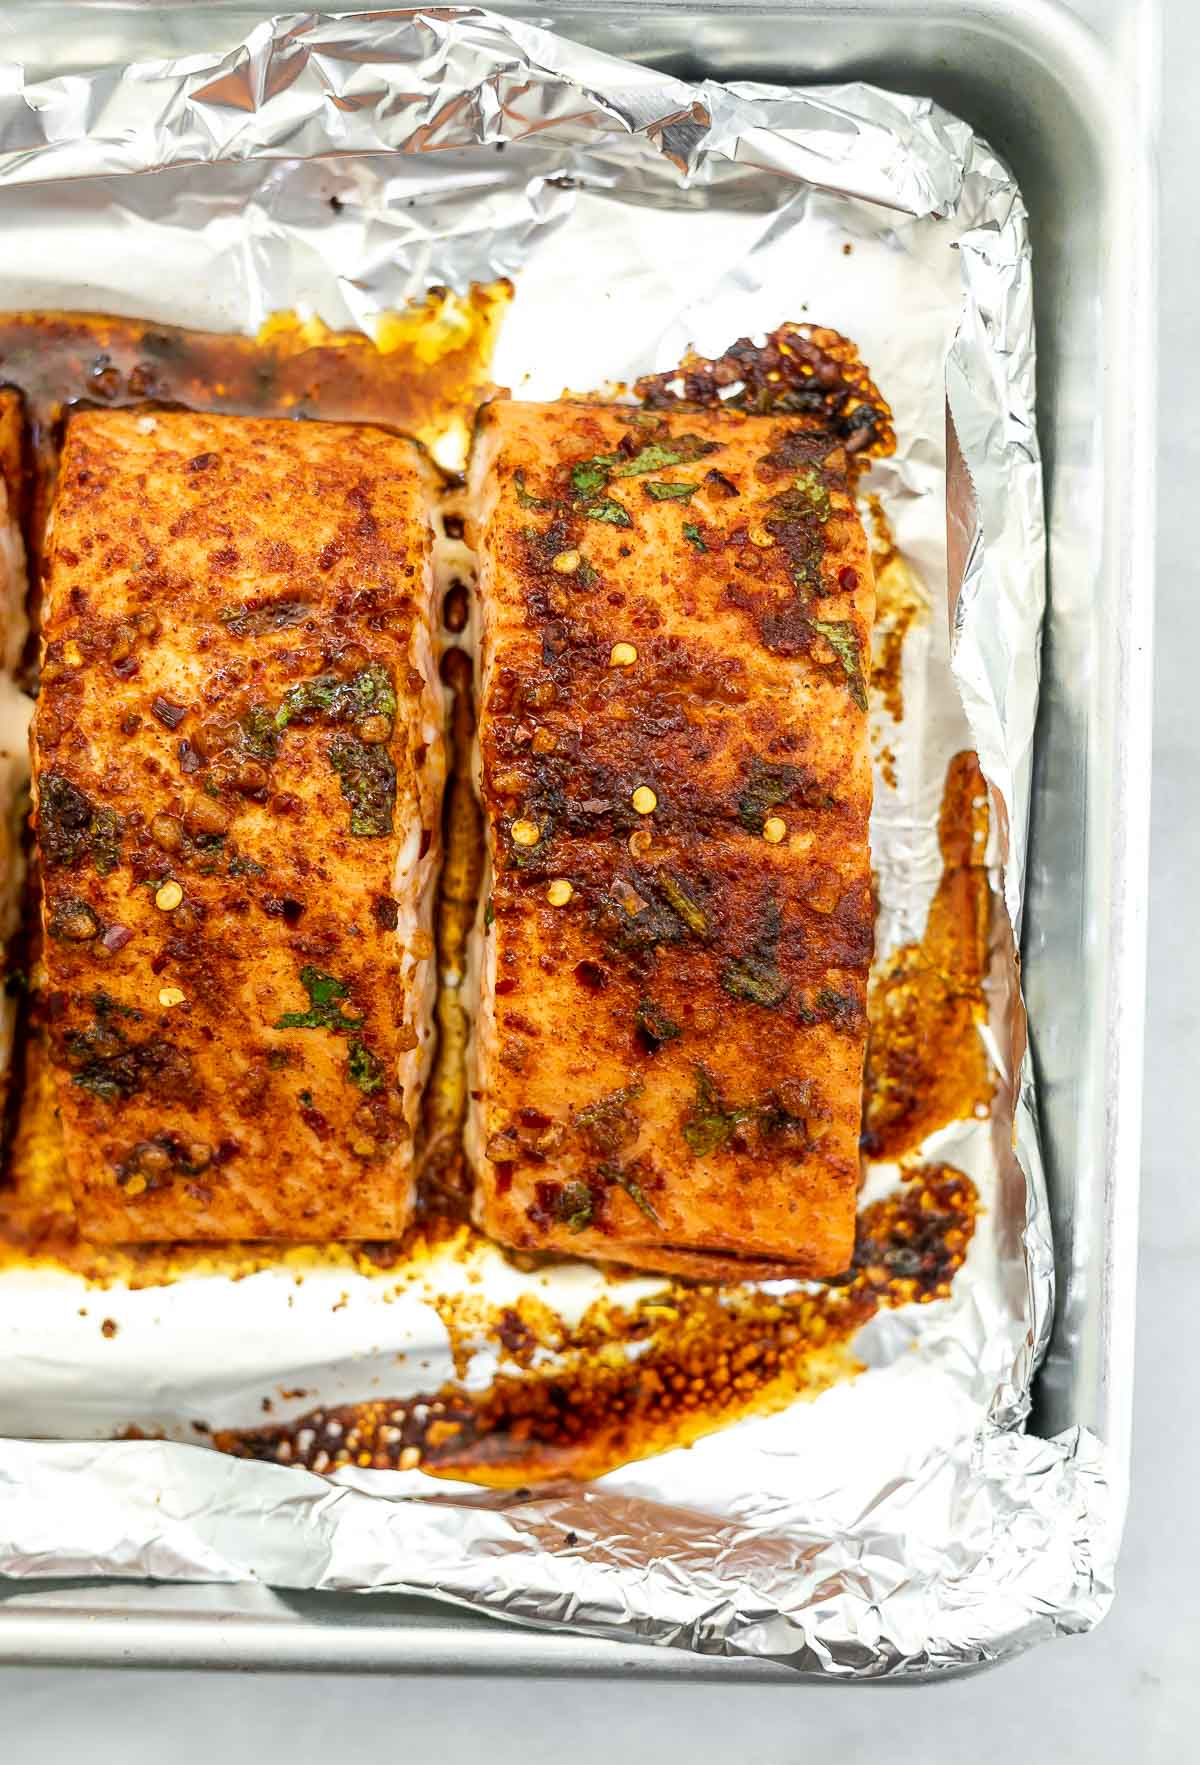 Final salmon after baking.